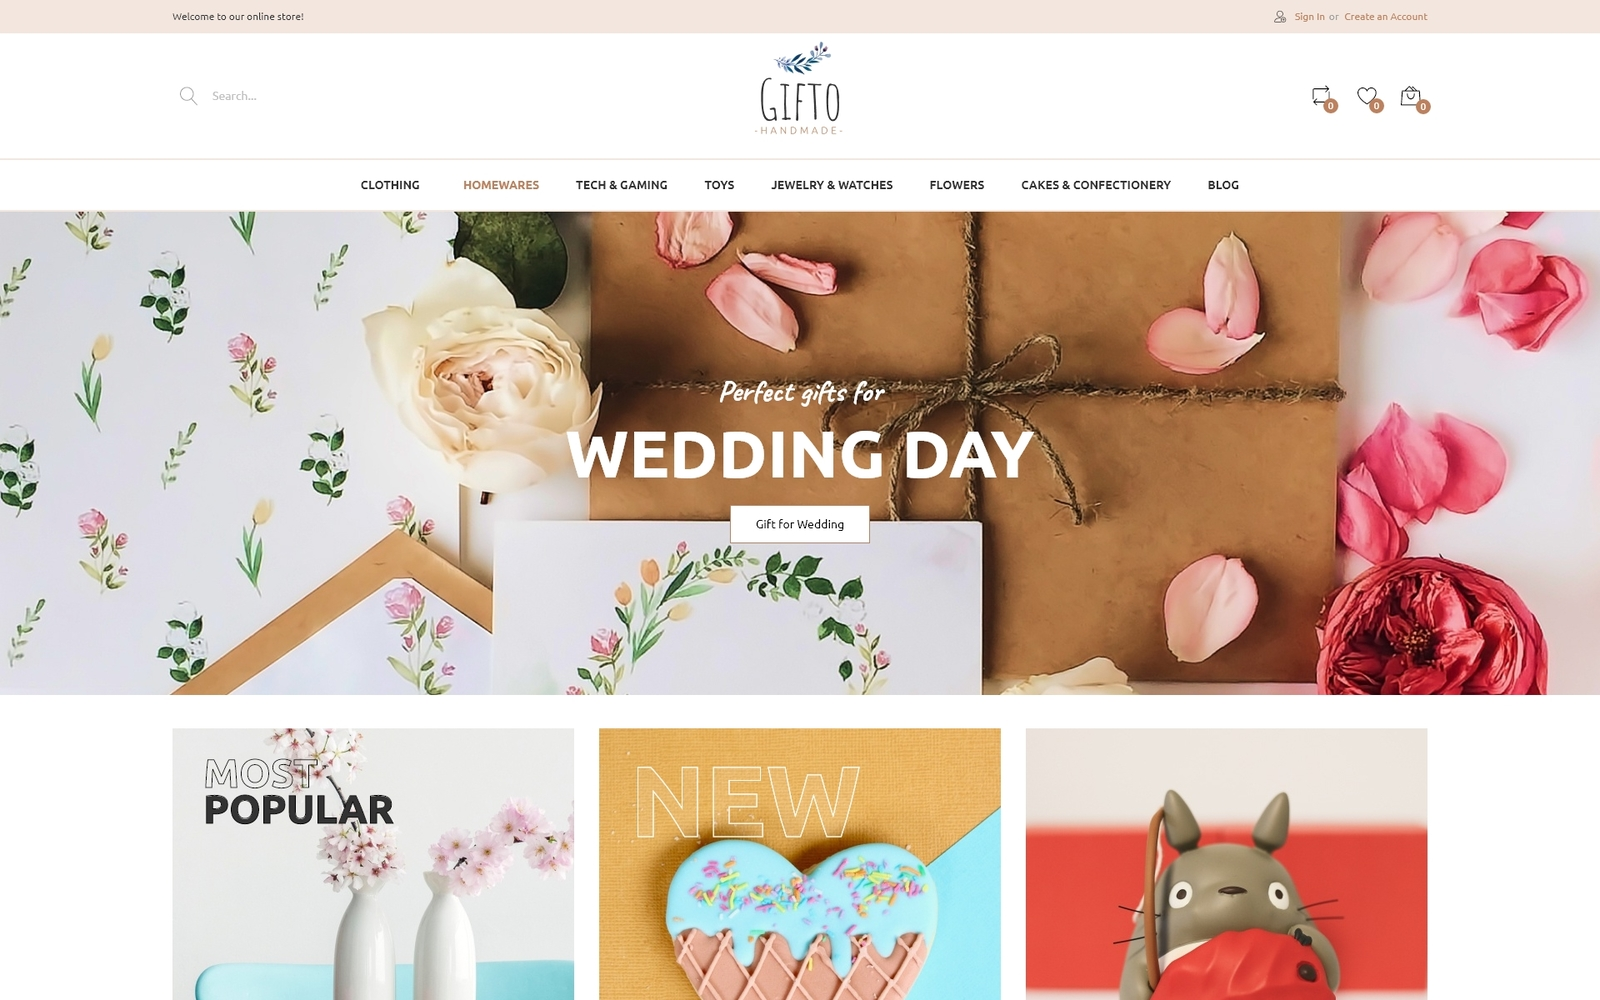 Reszponzív Gifto - Gifts Store Clean eCommerce Magento sablon 85939